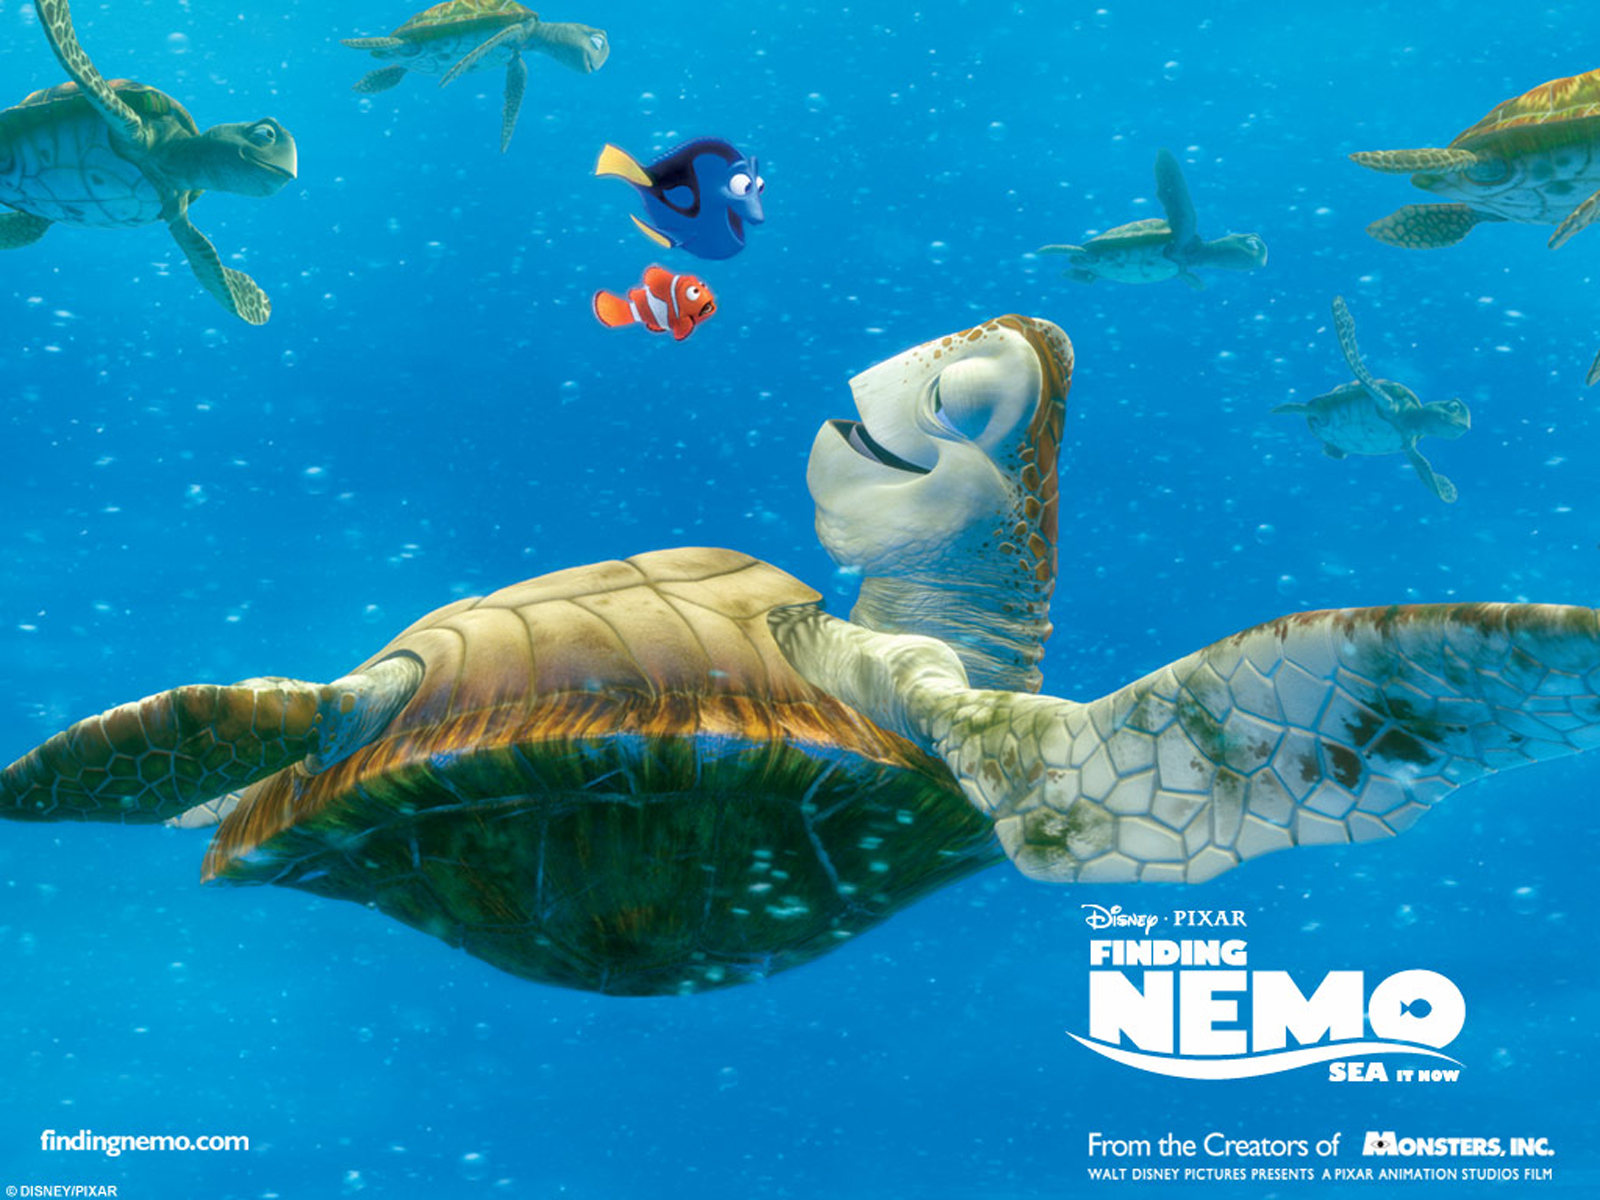 Nemo 3D Movie Poster HD Wallpapers Download Wallpapers in HD 1600x1200